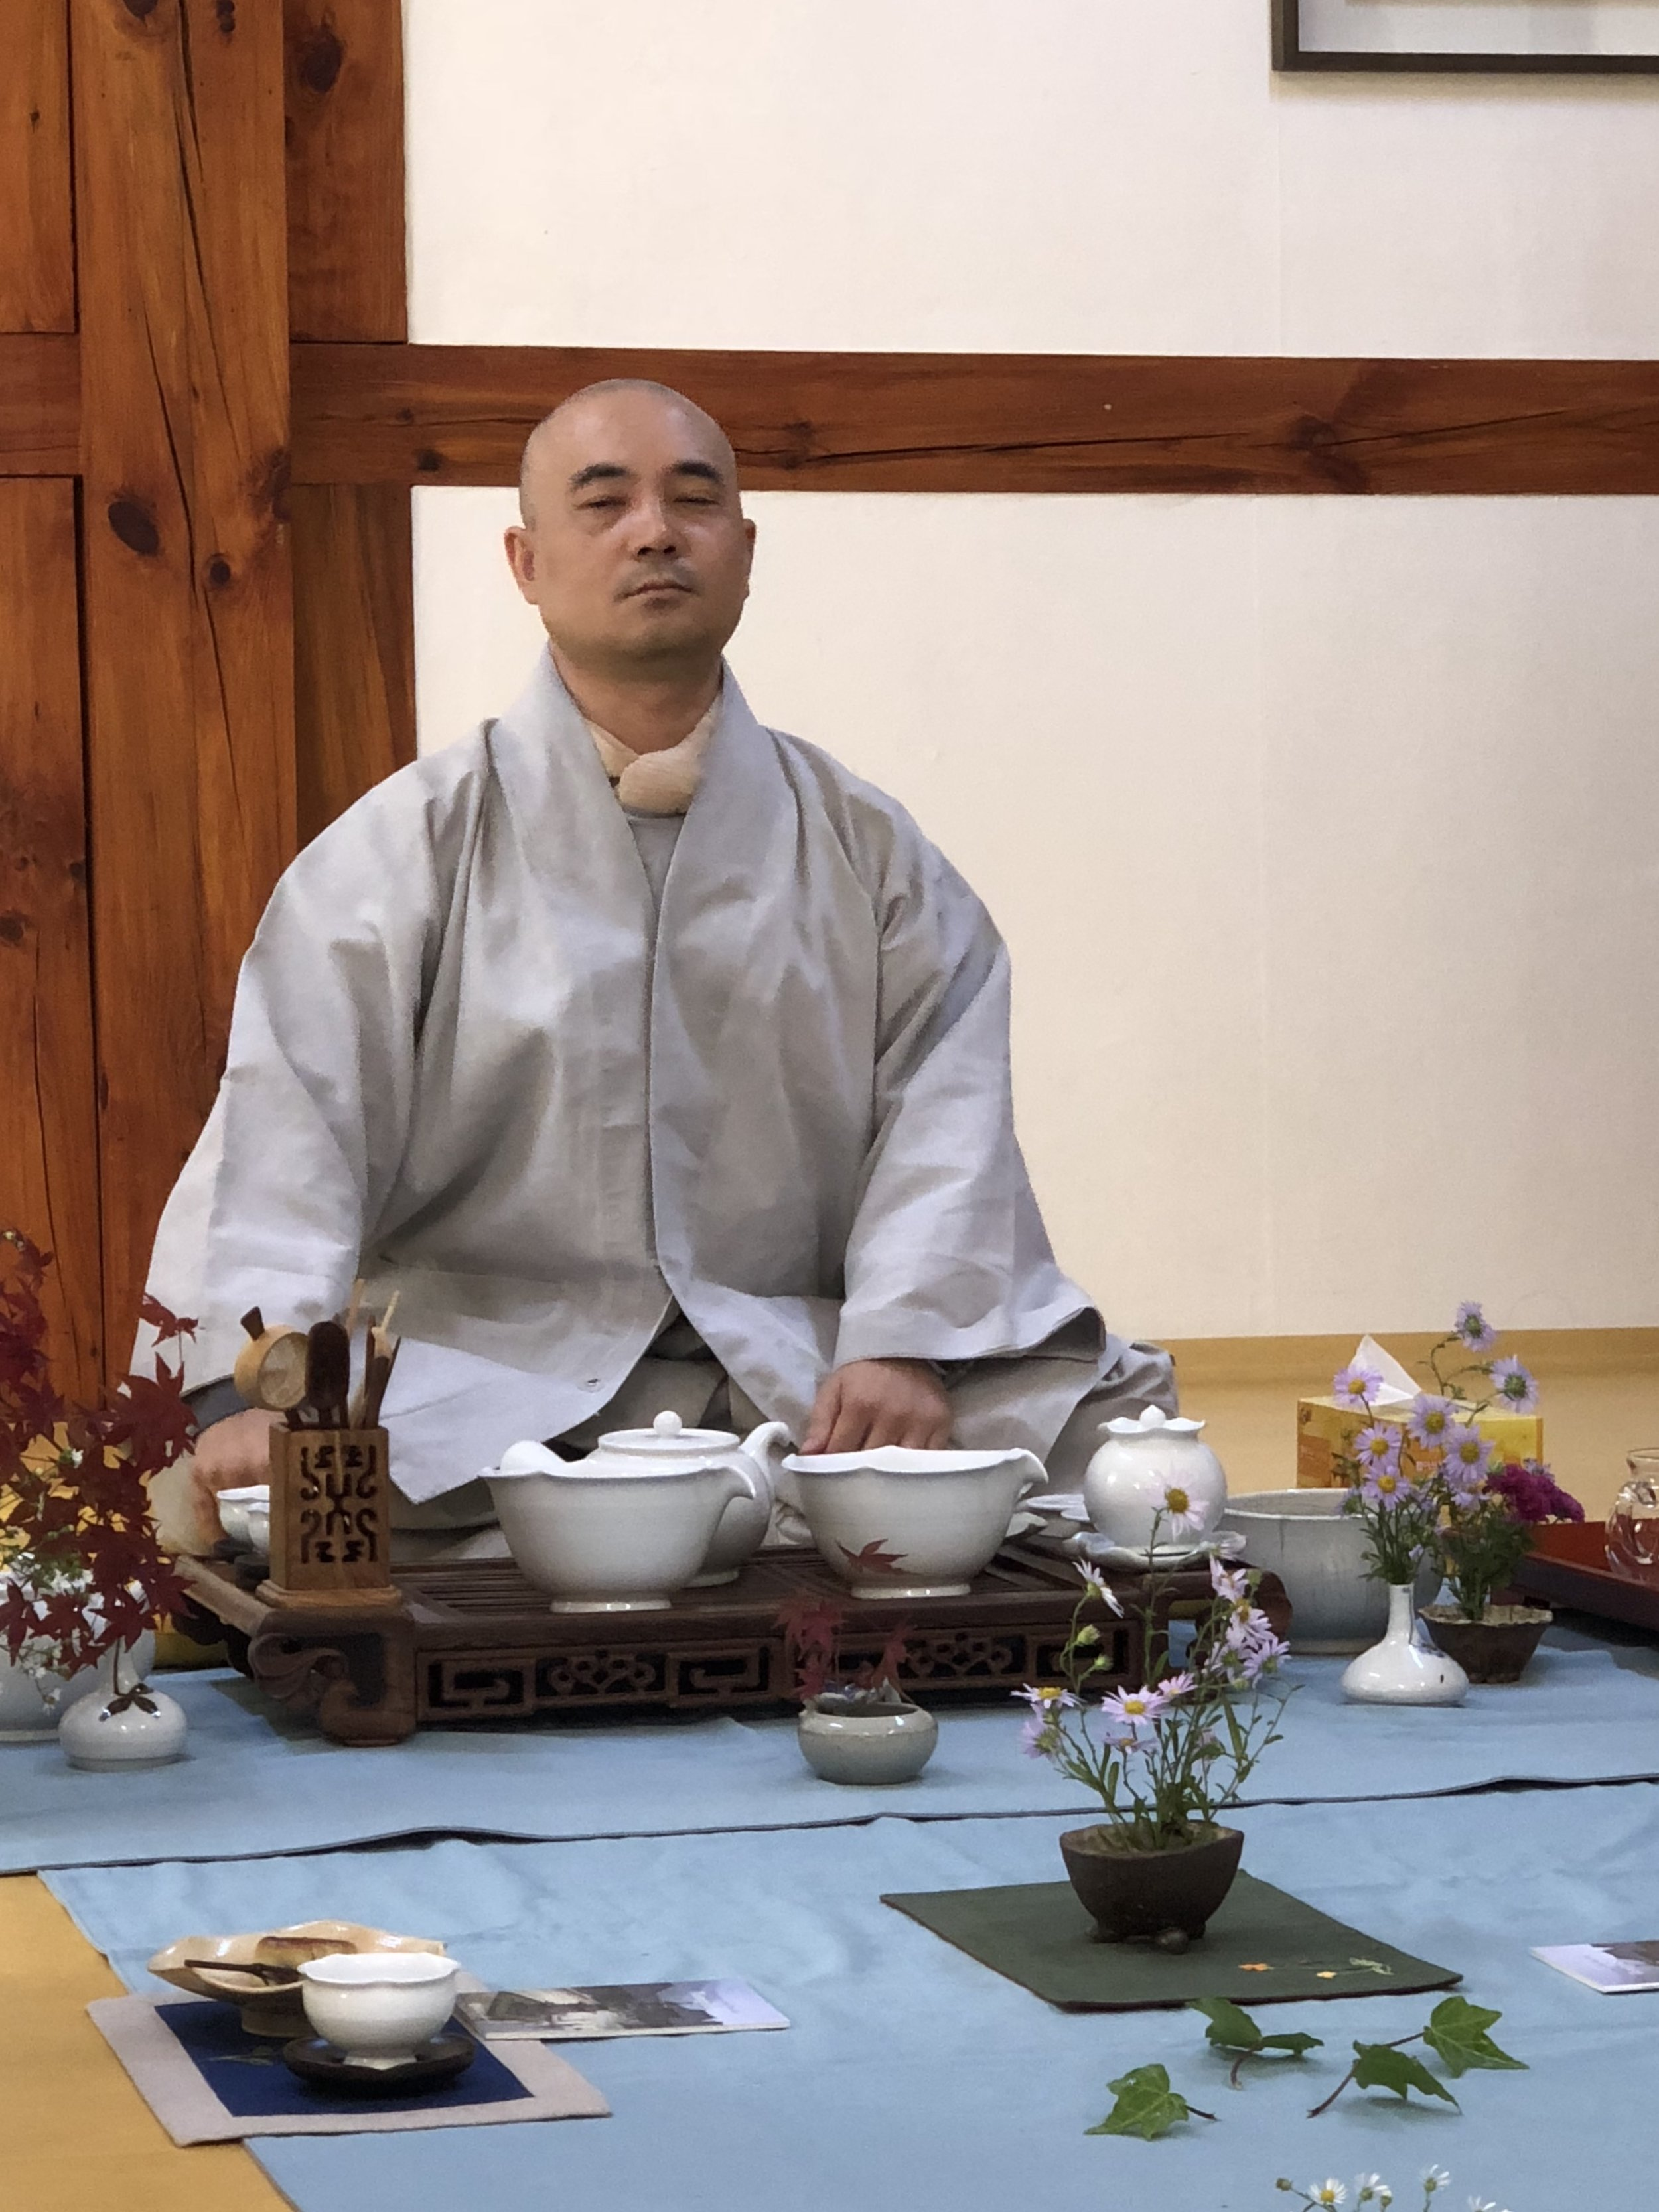 Starting our day sharing tea with one of the monks from Bulguksa Temple